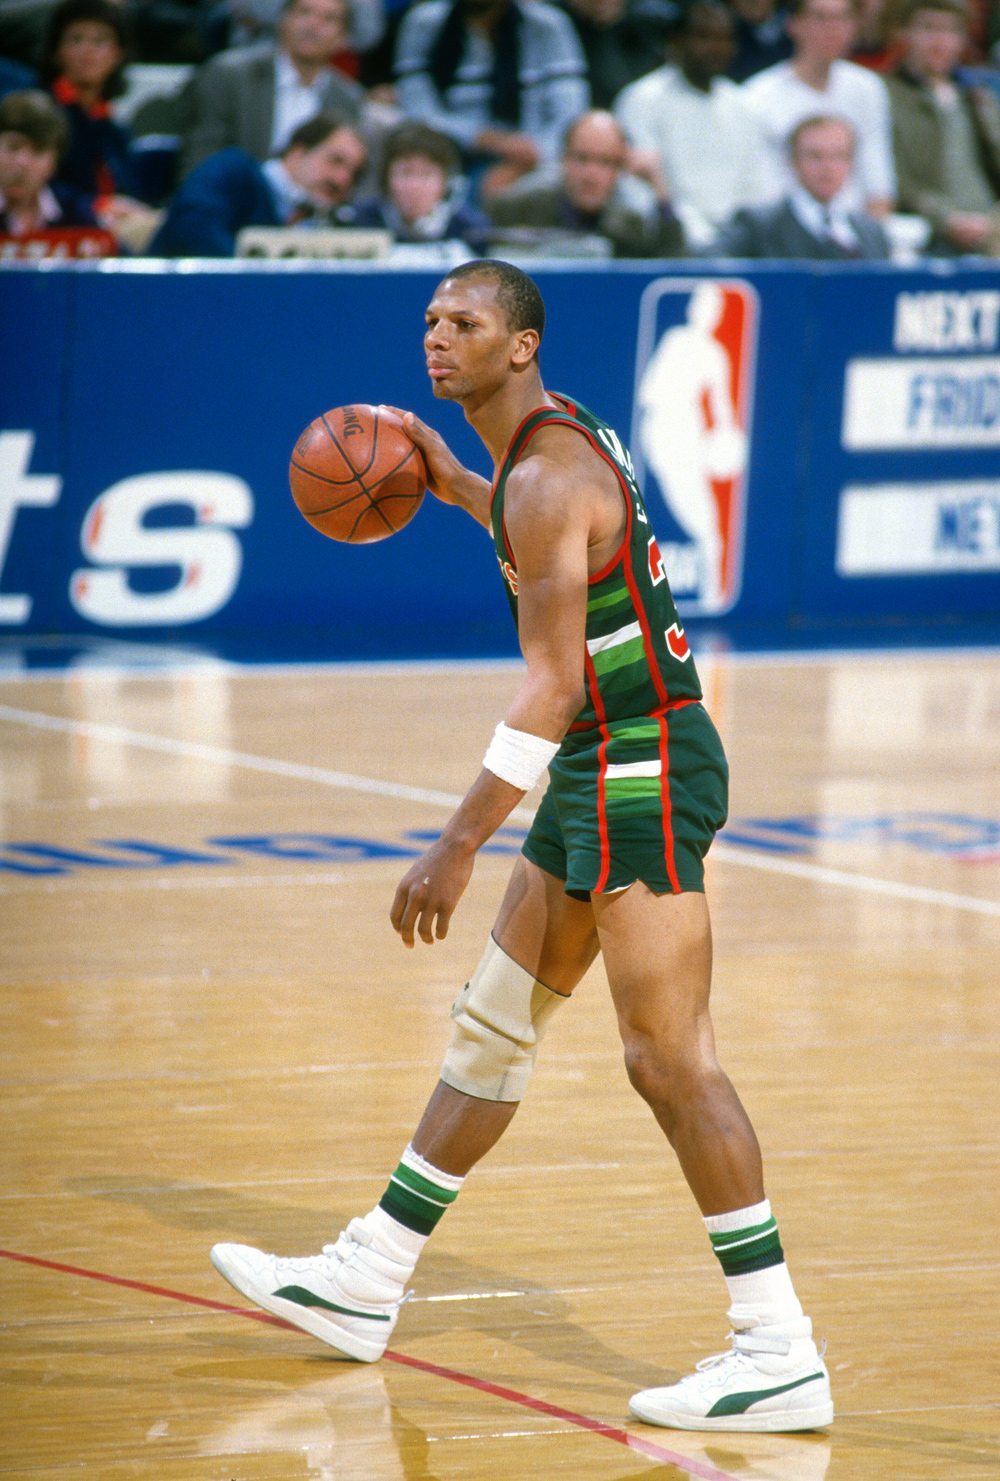 uk availability c0de3 47519 Milwaukee Bucks forward Terry Cummings dribbles the ball in the Puma Sky LX  during a 1985 game against the Washington Bullets. Cummings wore Pumas in  the ...